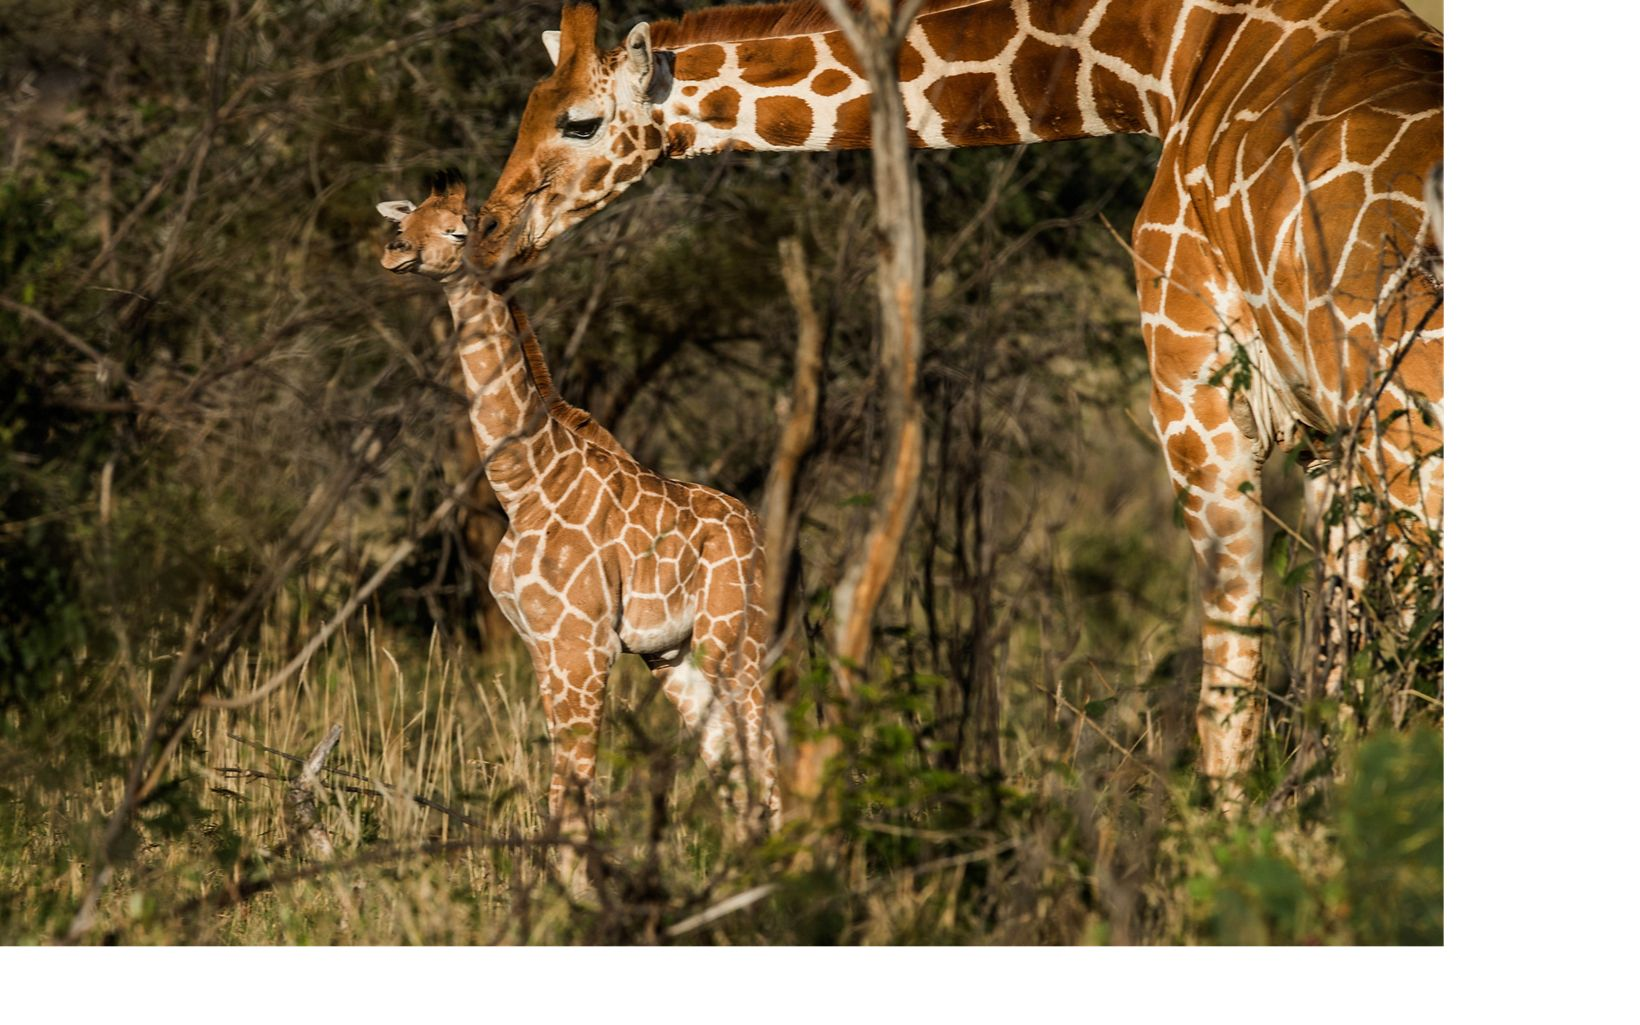 Current estimates are that giraffe populations across Africa have dropped 40 percent in 25 years, plummeting from 140,000 in the late 1990s to about 85,000 today.